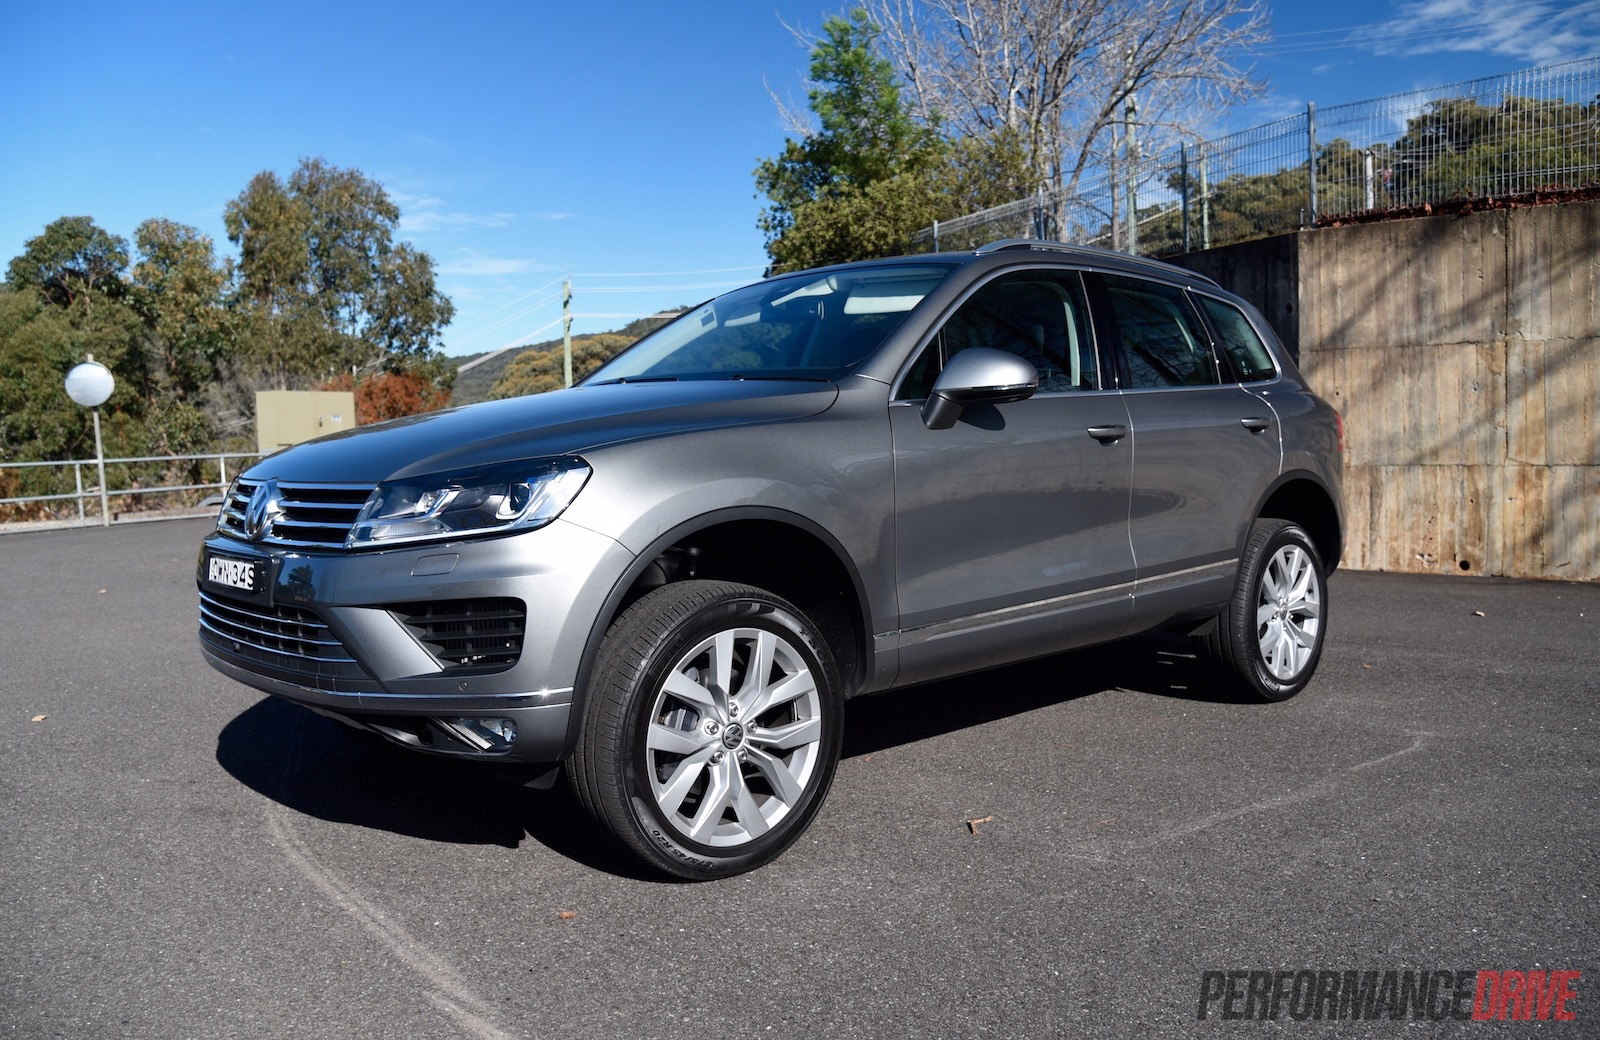 2015 volkswagen touareg v6 tdi review video performancedrive. Black Bedroom Furniture Sets. Home Design Ideas